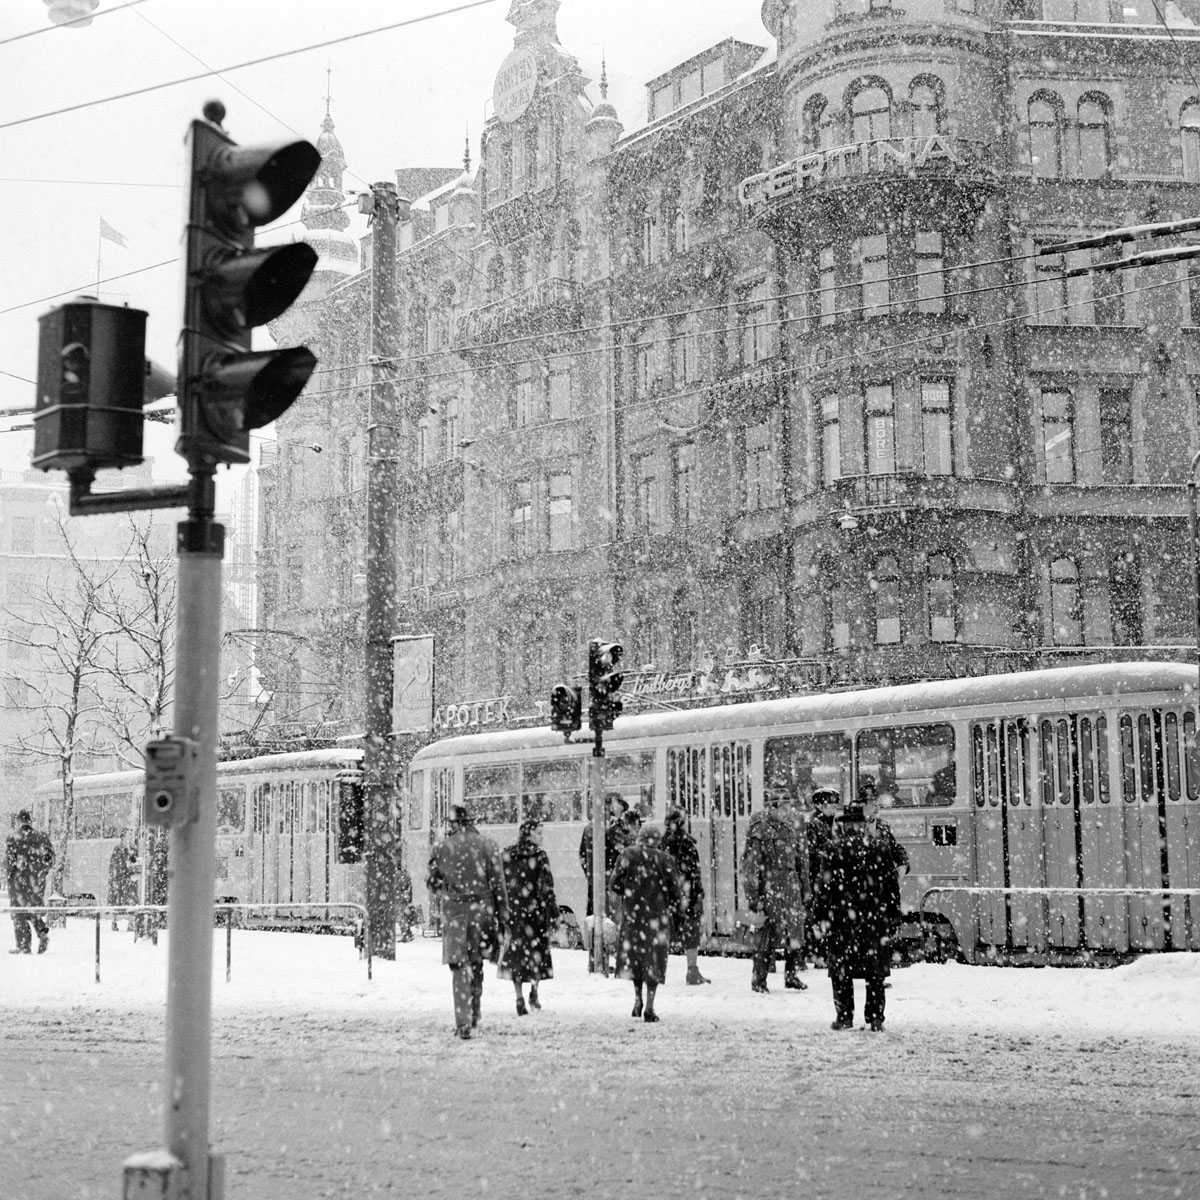 File:Stureplan, Stockholm In The Winter Of 1957